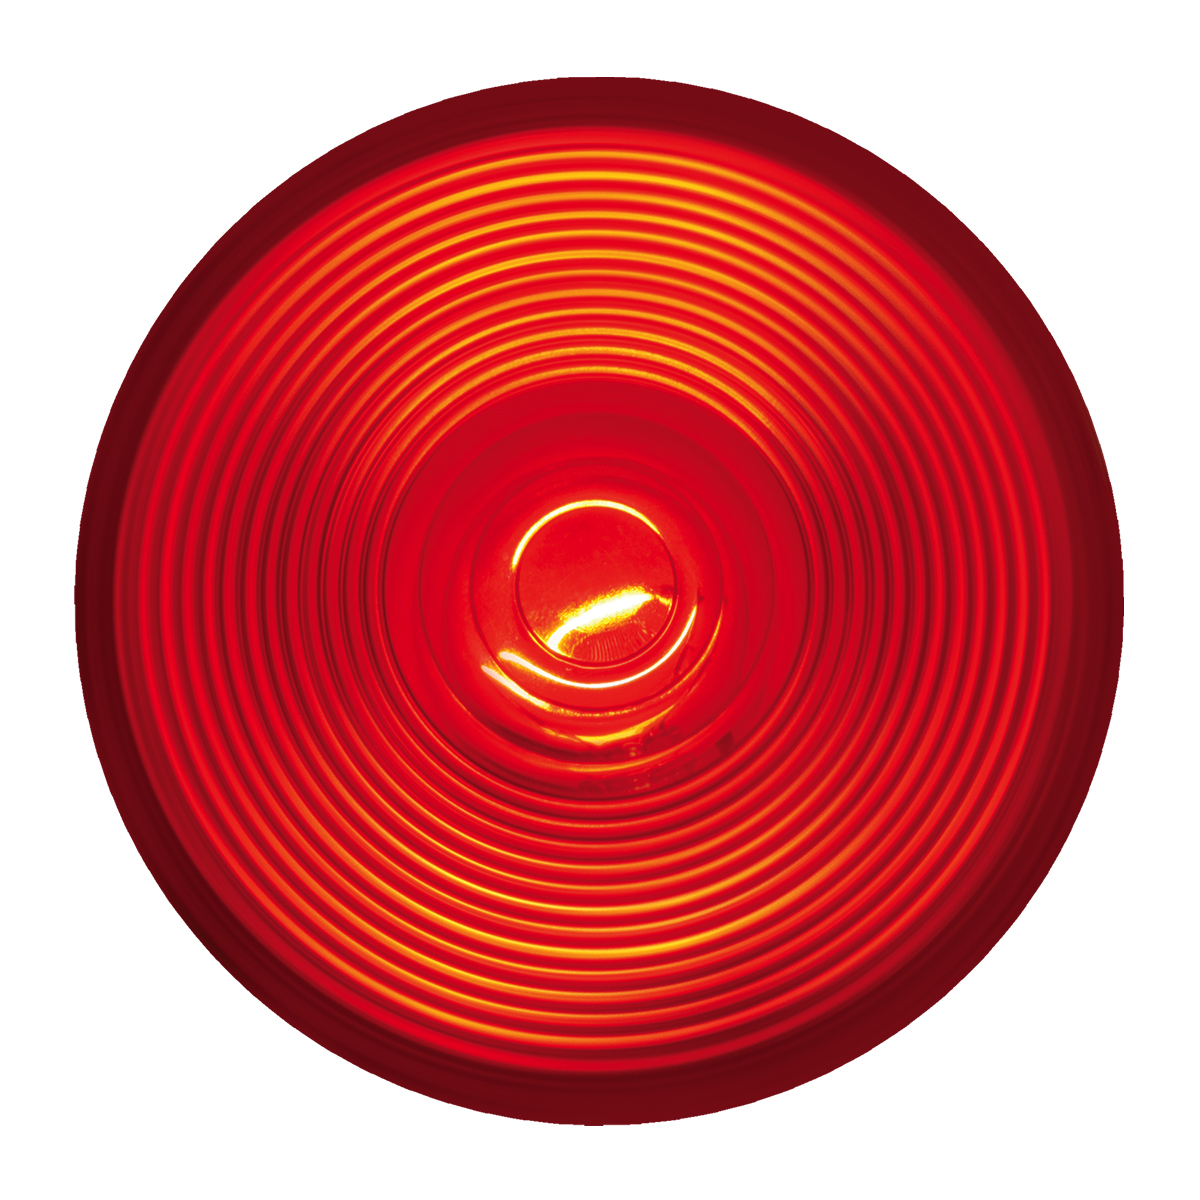 "#80471 - 4"" Round Incandescent Flat Red/Red Light"